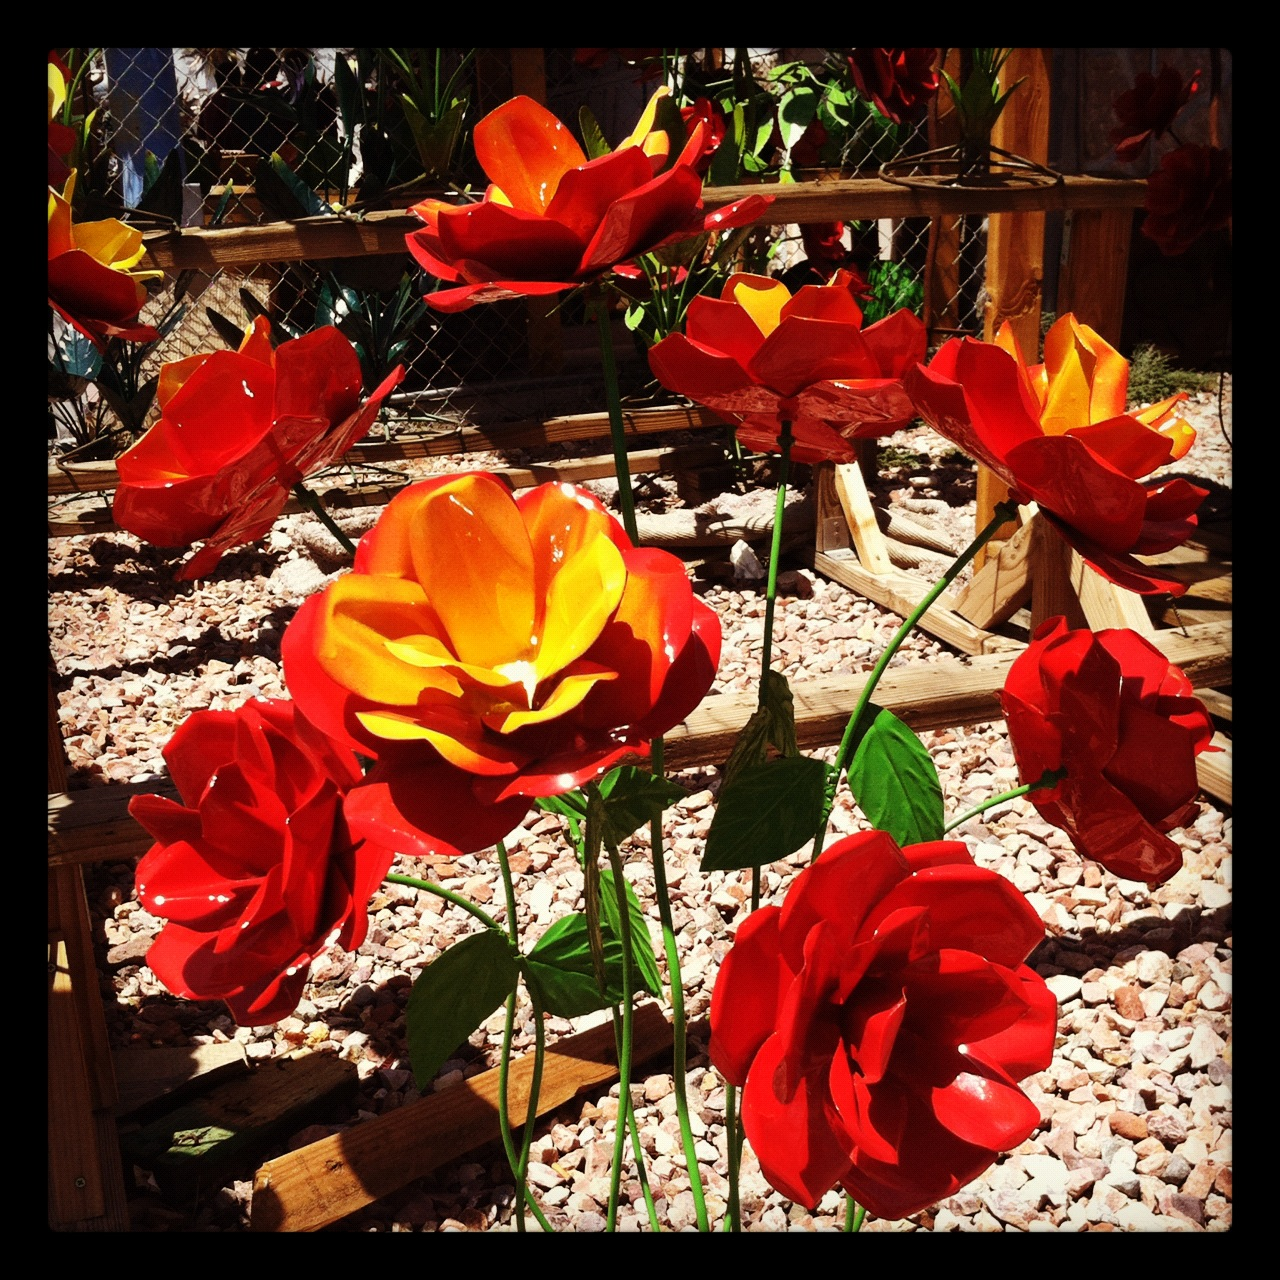 The daily rant forever in bloom - Hacienda interiors boulder city nv ...